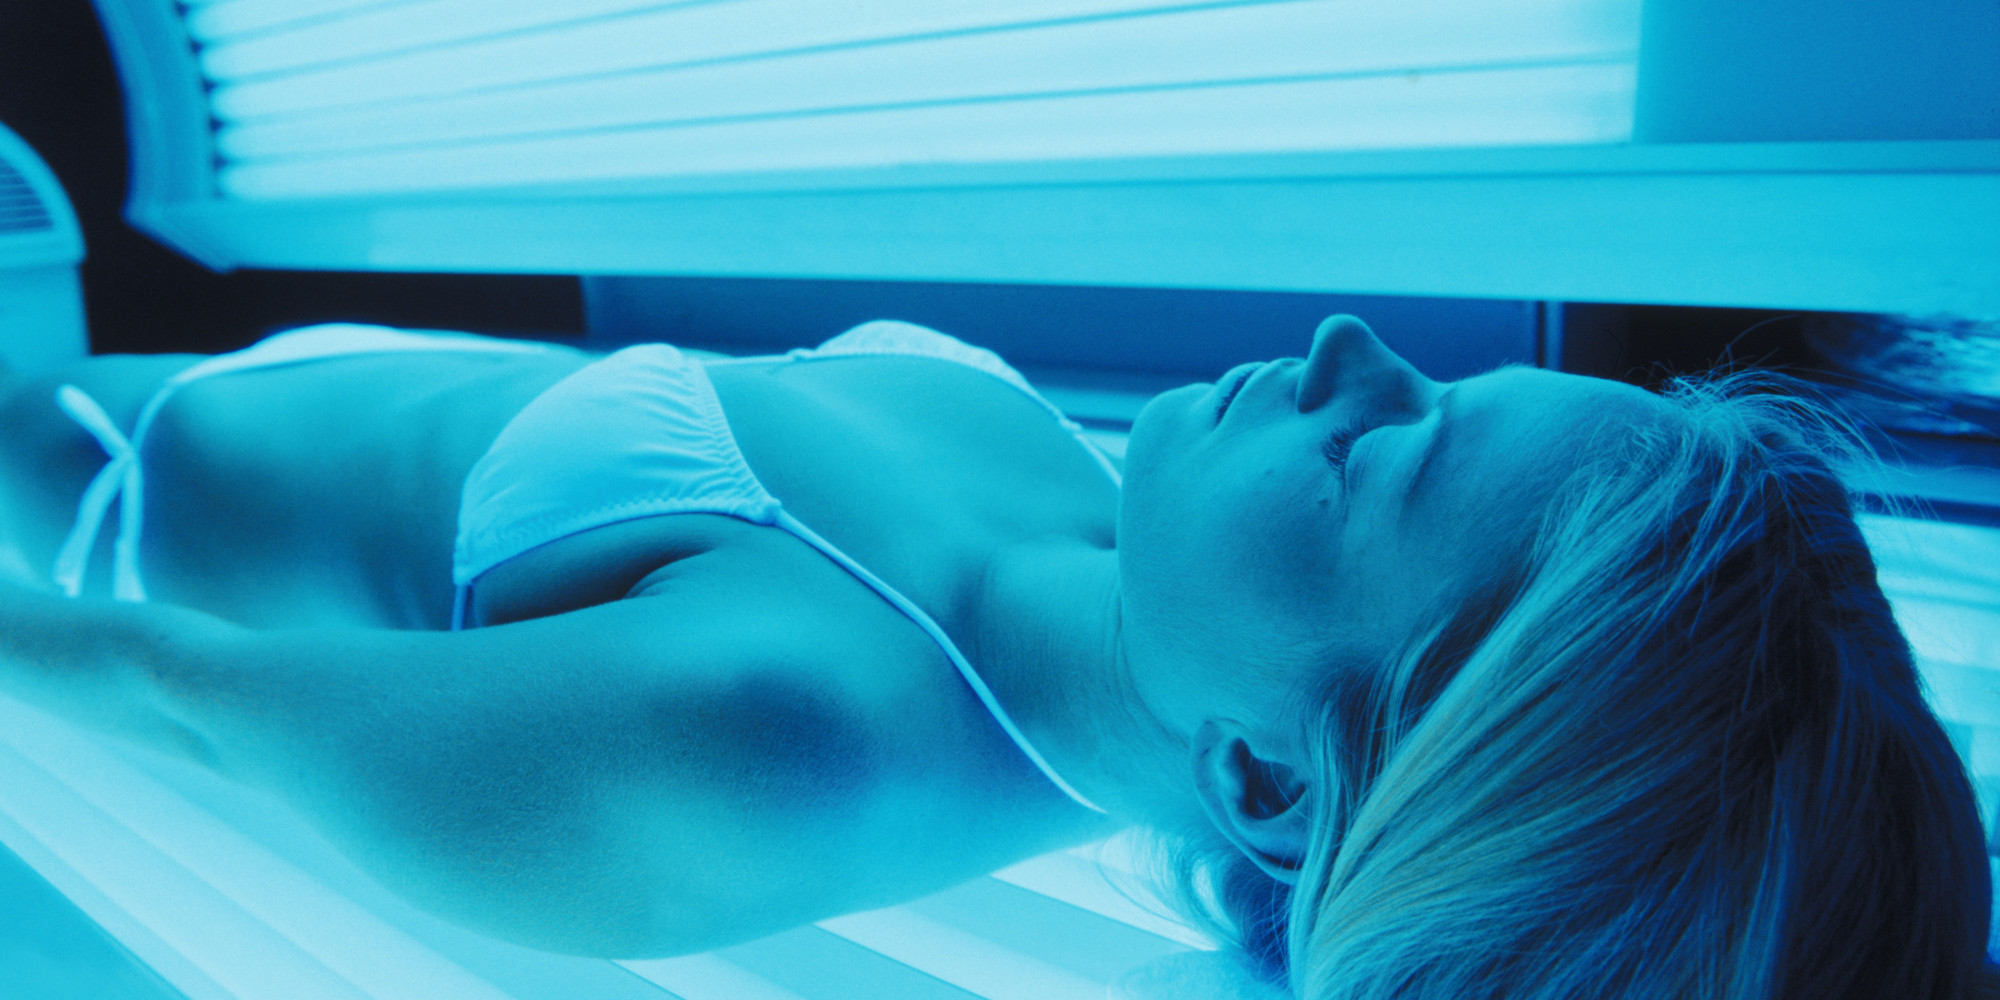 Consider, Tanning bed girl naked selfie